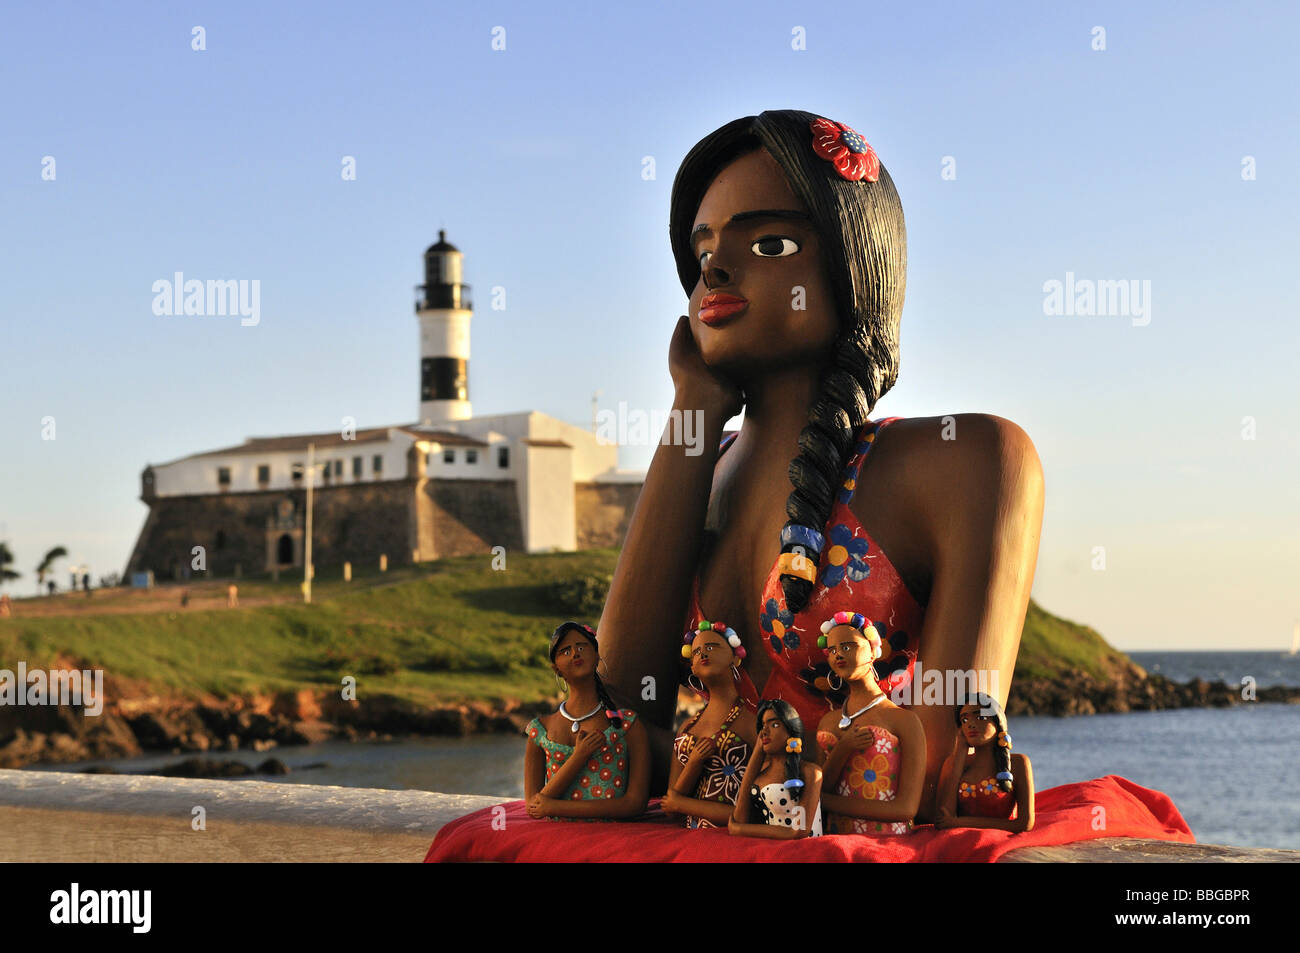 Traditional arts and crafts, clay figurine of a girl in love, namoradinha, and Forte de Santo Antonio da Barra fortress - Stock Image